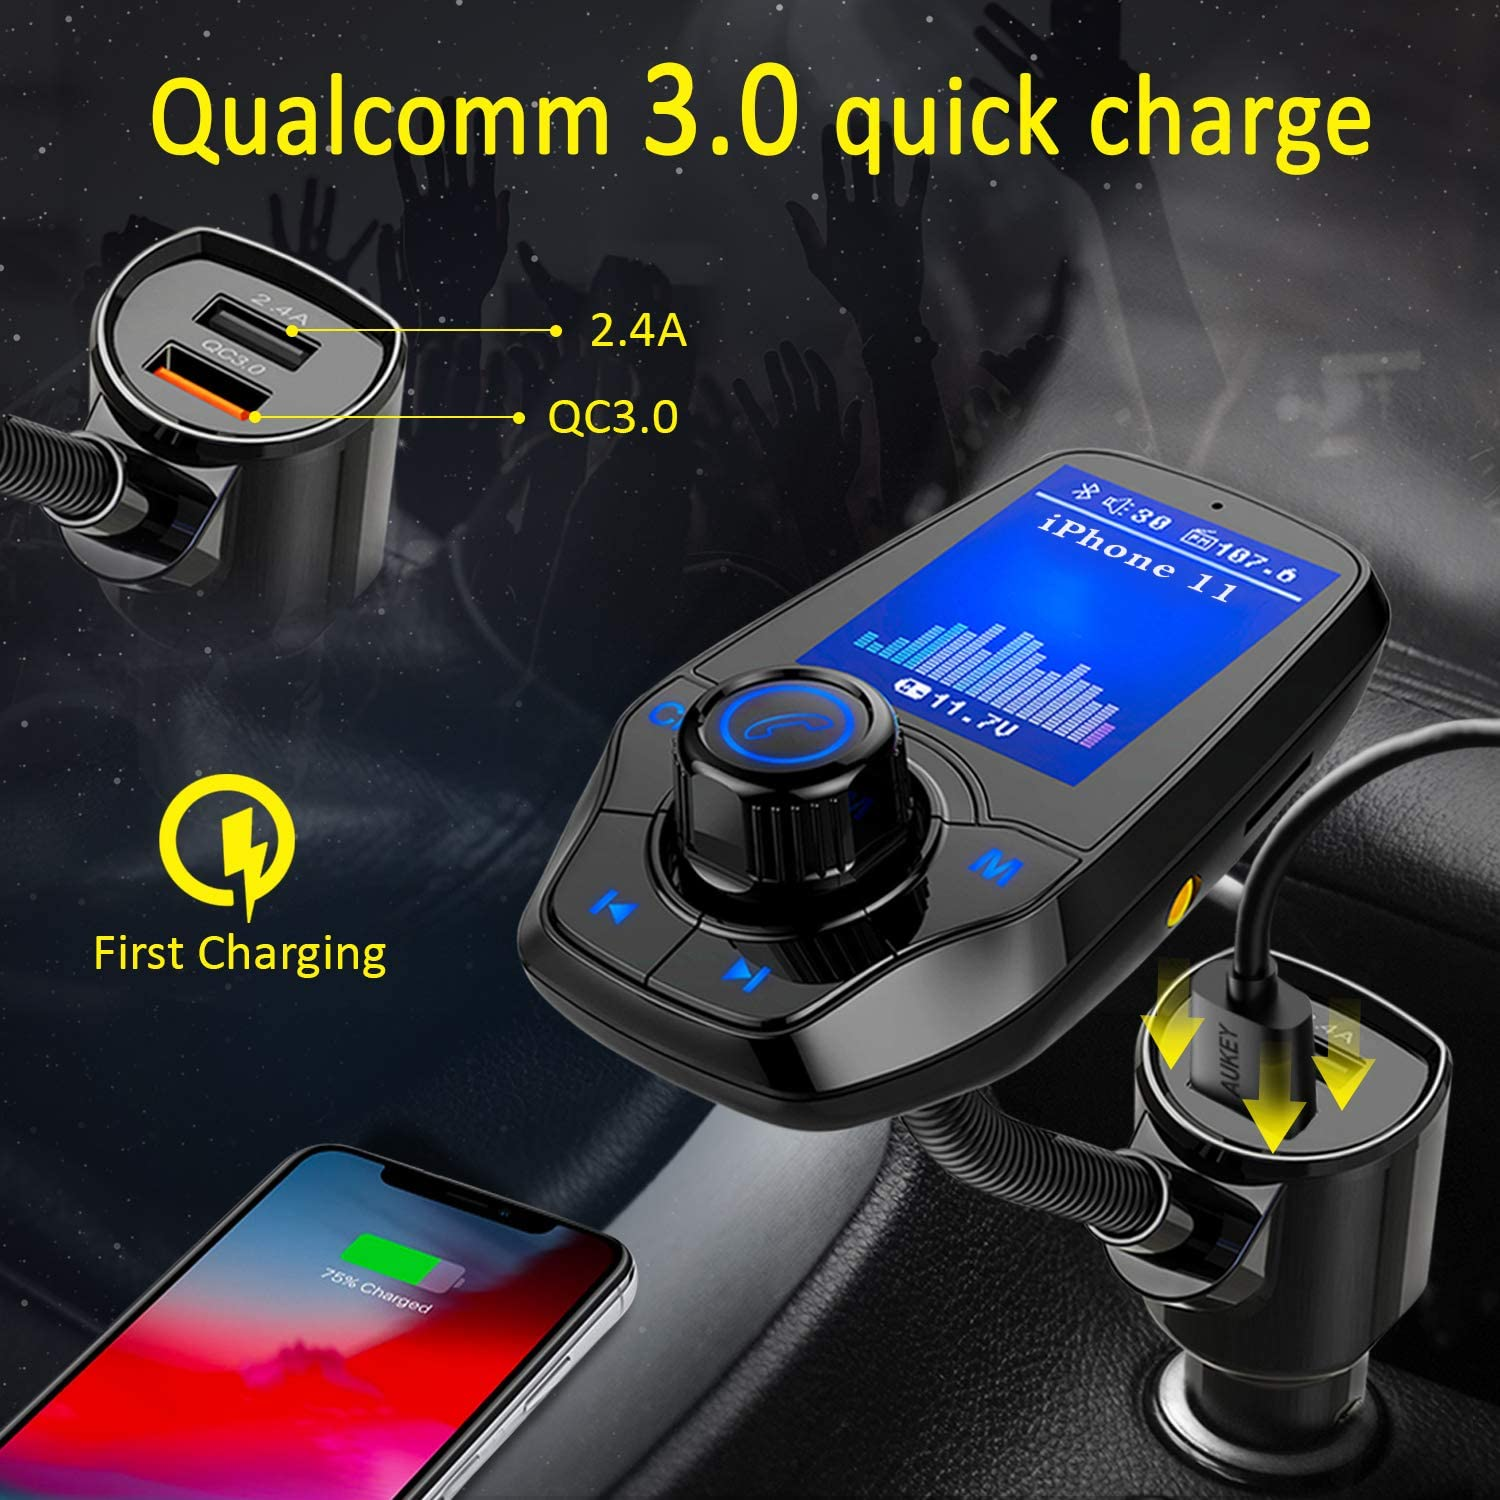 Support microSD Card EQ Modes Black. 1.8 Color Screen Radio Adapter W QC3.0 /& 5V//2.4A Charging Handsfree Call KM18 Aux Play KINDLUXE Bluetooth FM Transmitter for Car Upgraded Version